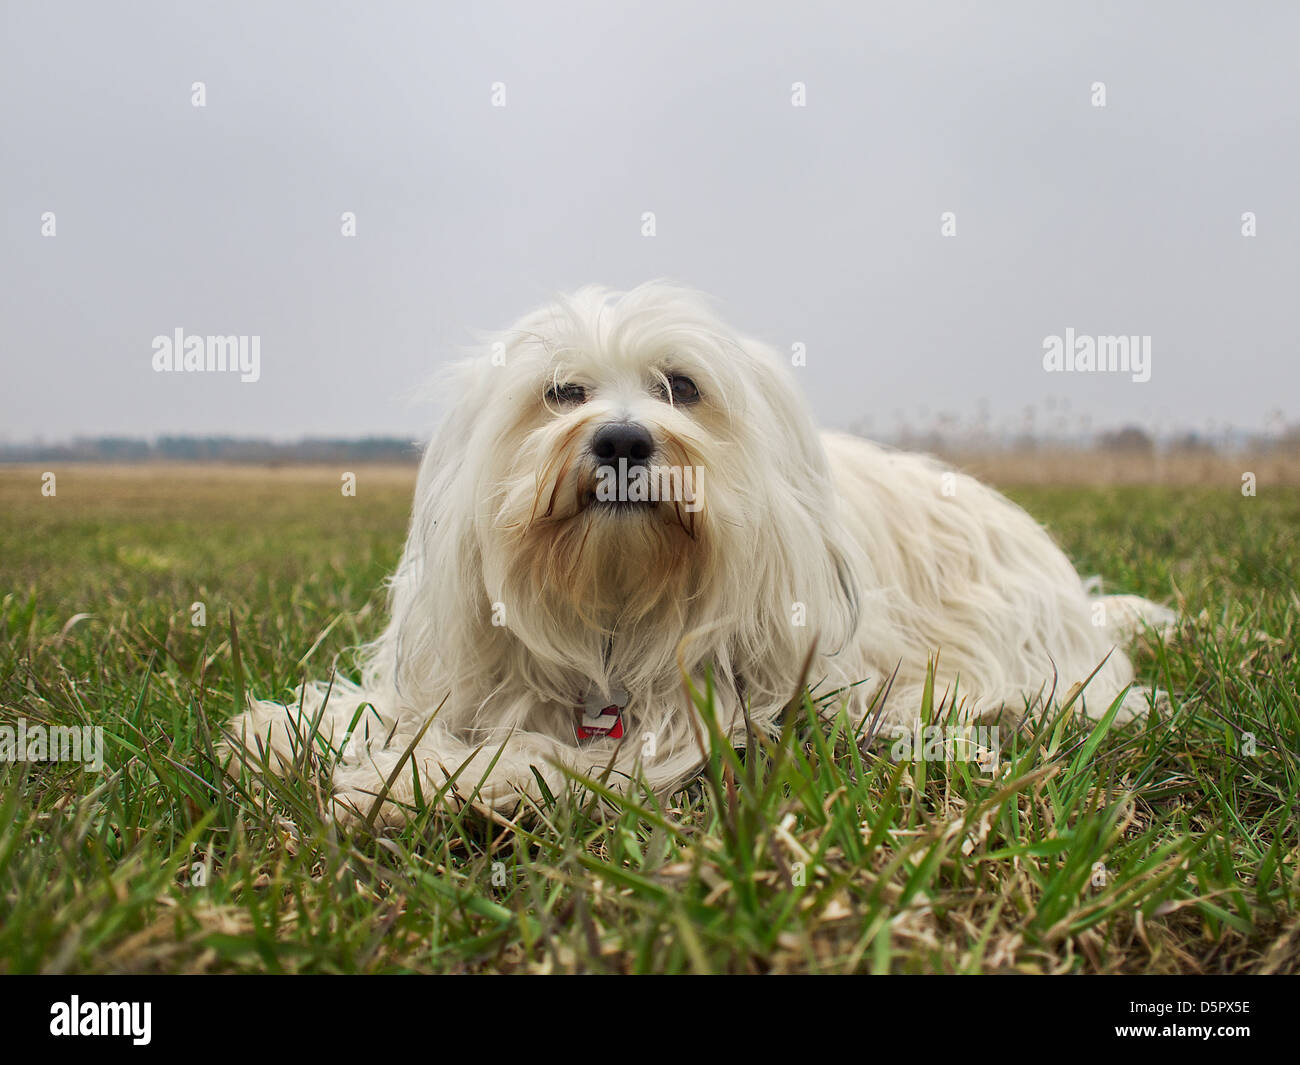 A Small White Long Haired Dog Lying In A Meadow Stock Photo